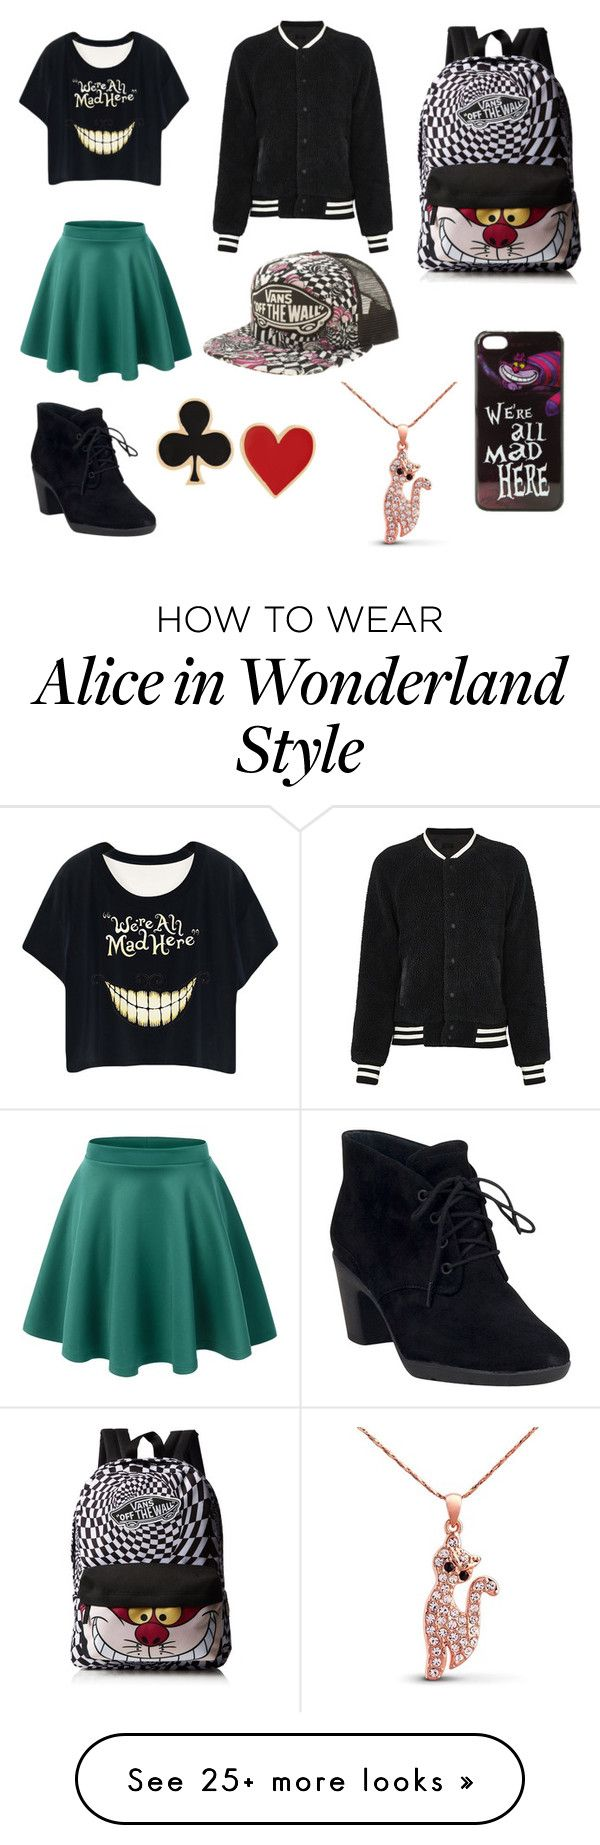 """Wonderland Fan"" by pinktutu2002 on Polyvore featuring LE3NO, Clarks, Essentiel, Vans, Disney and Alison Lou"